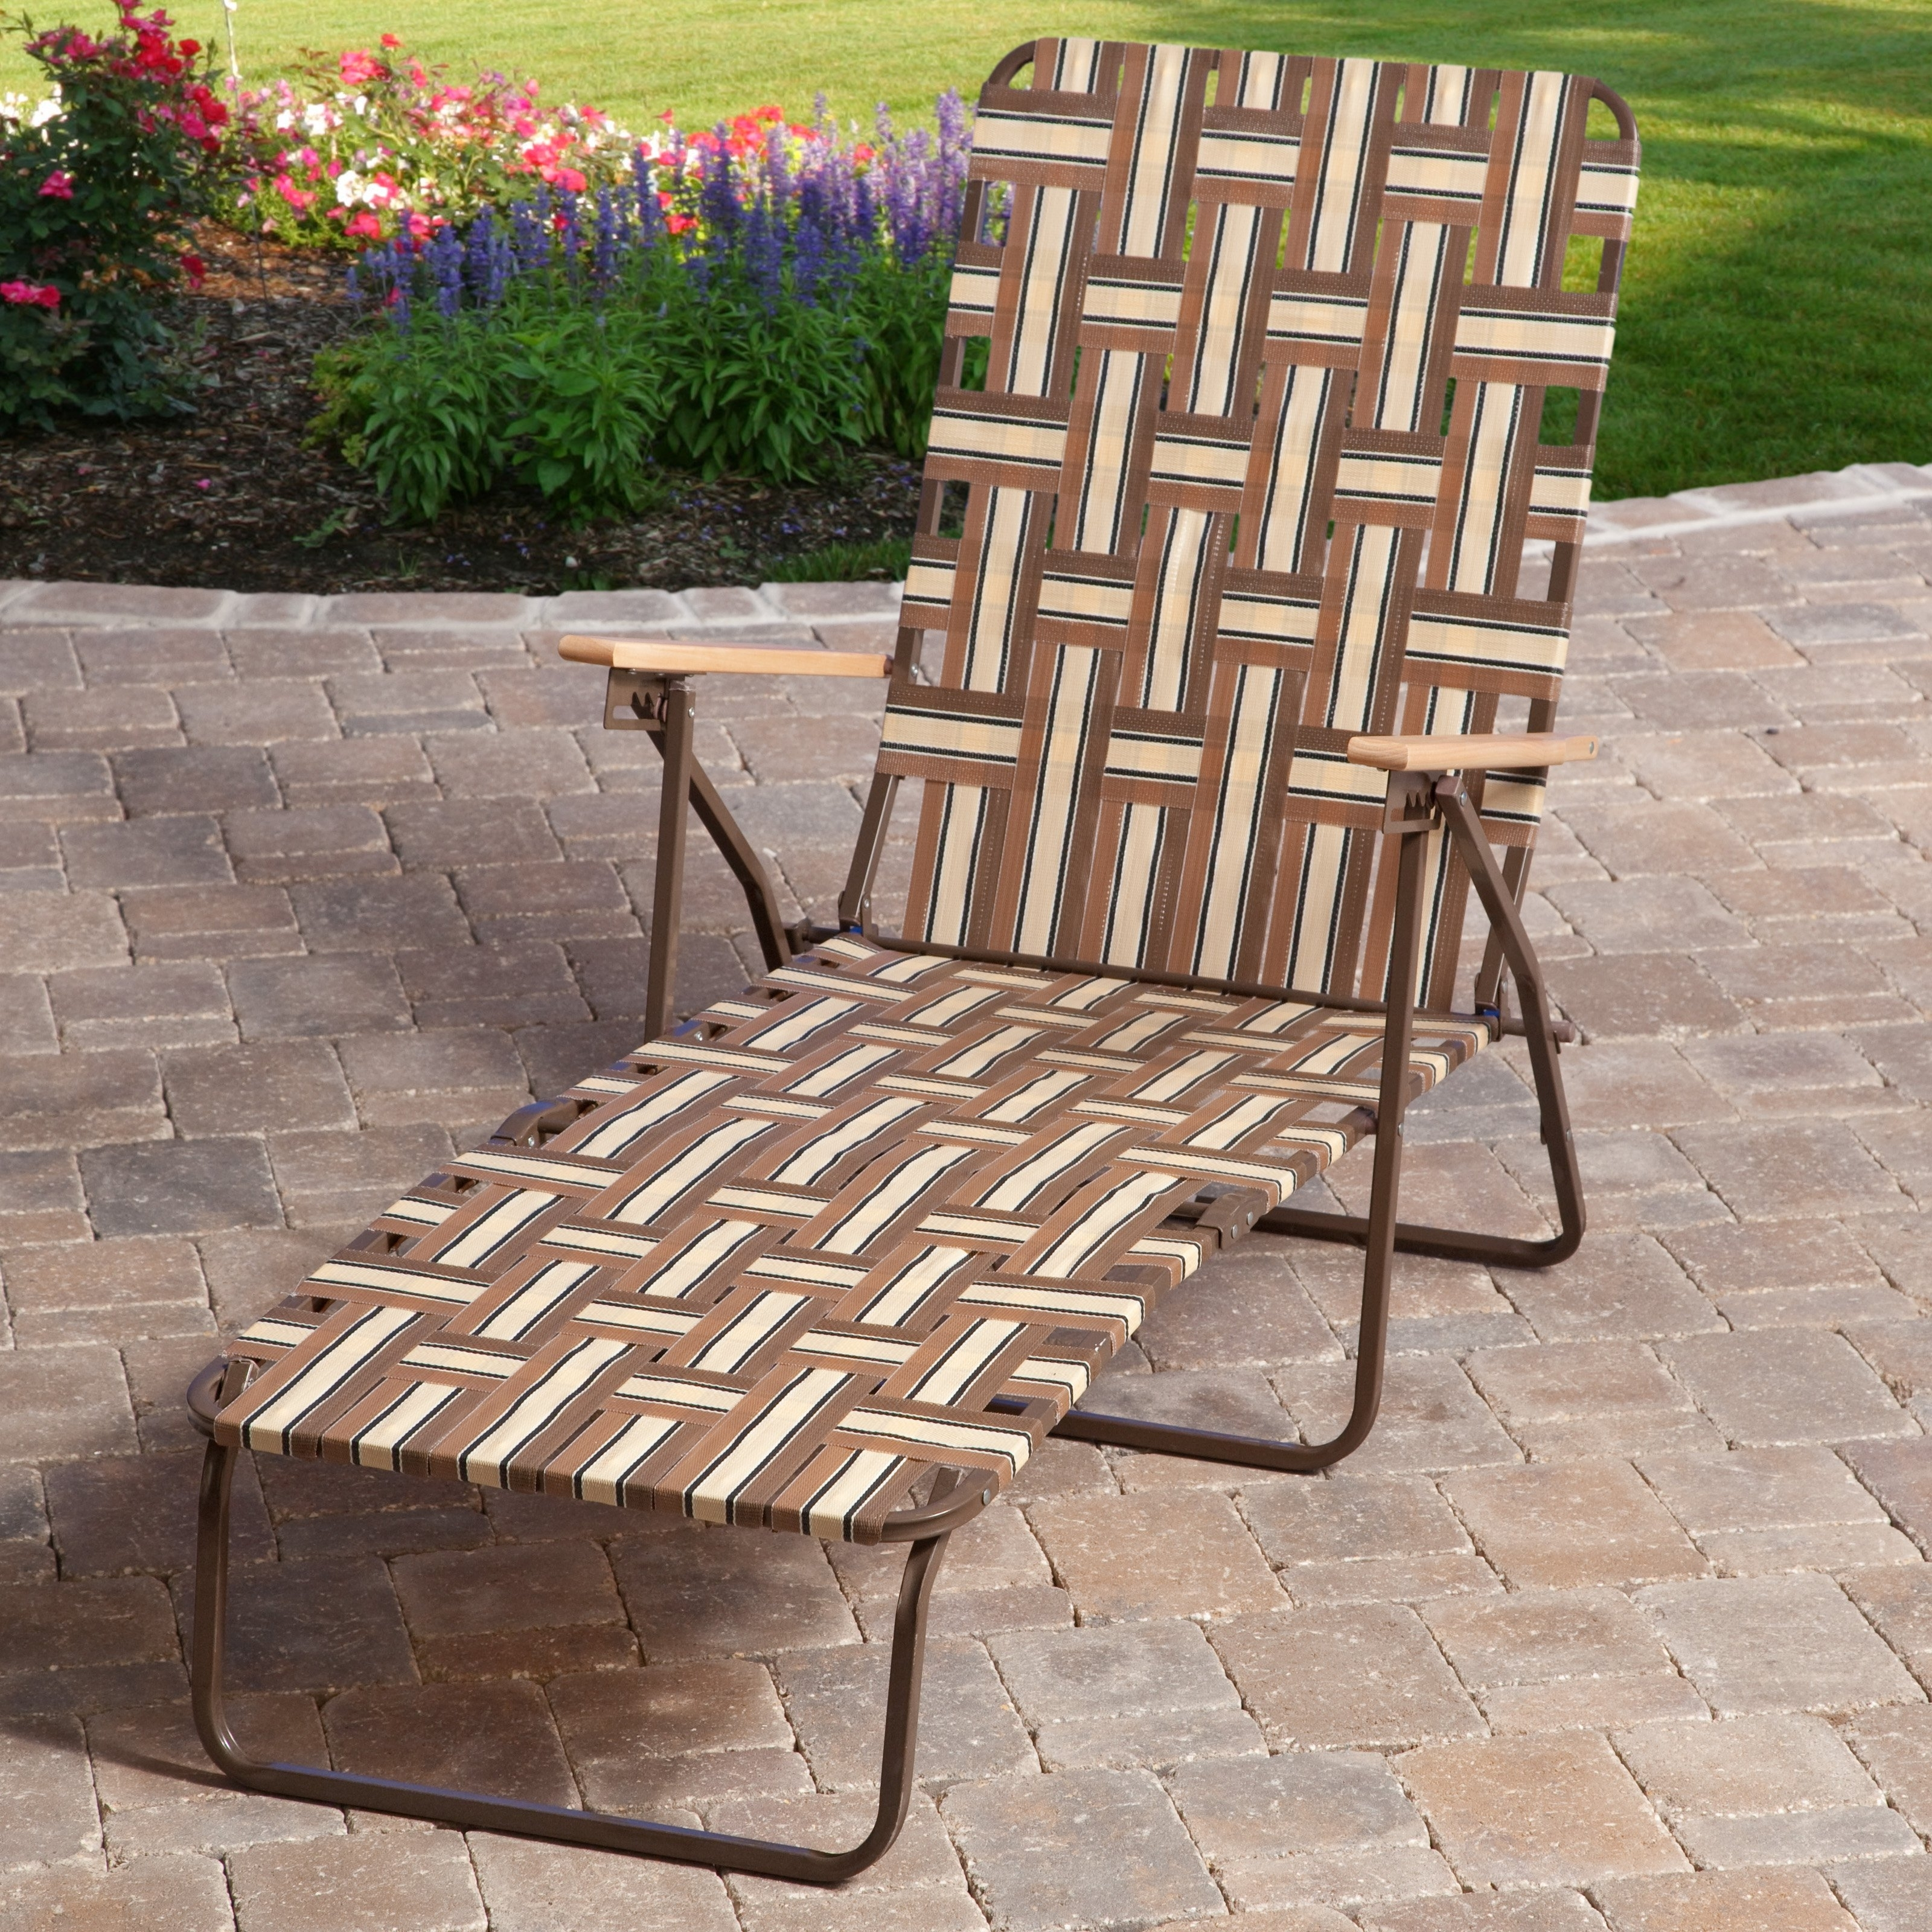 Rio Deluxe Folding Web Chaise Lounge – Walmart Regarding Most Current Outdoor Folding Chaise Lounges (View 13 of 15)